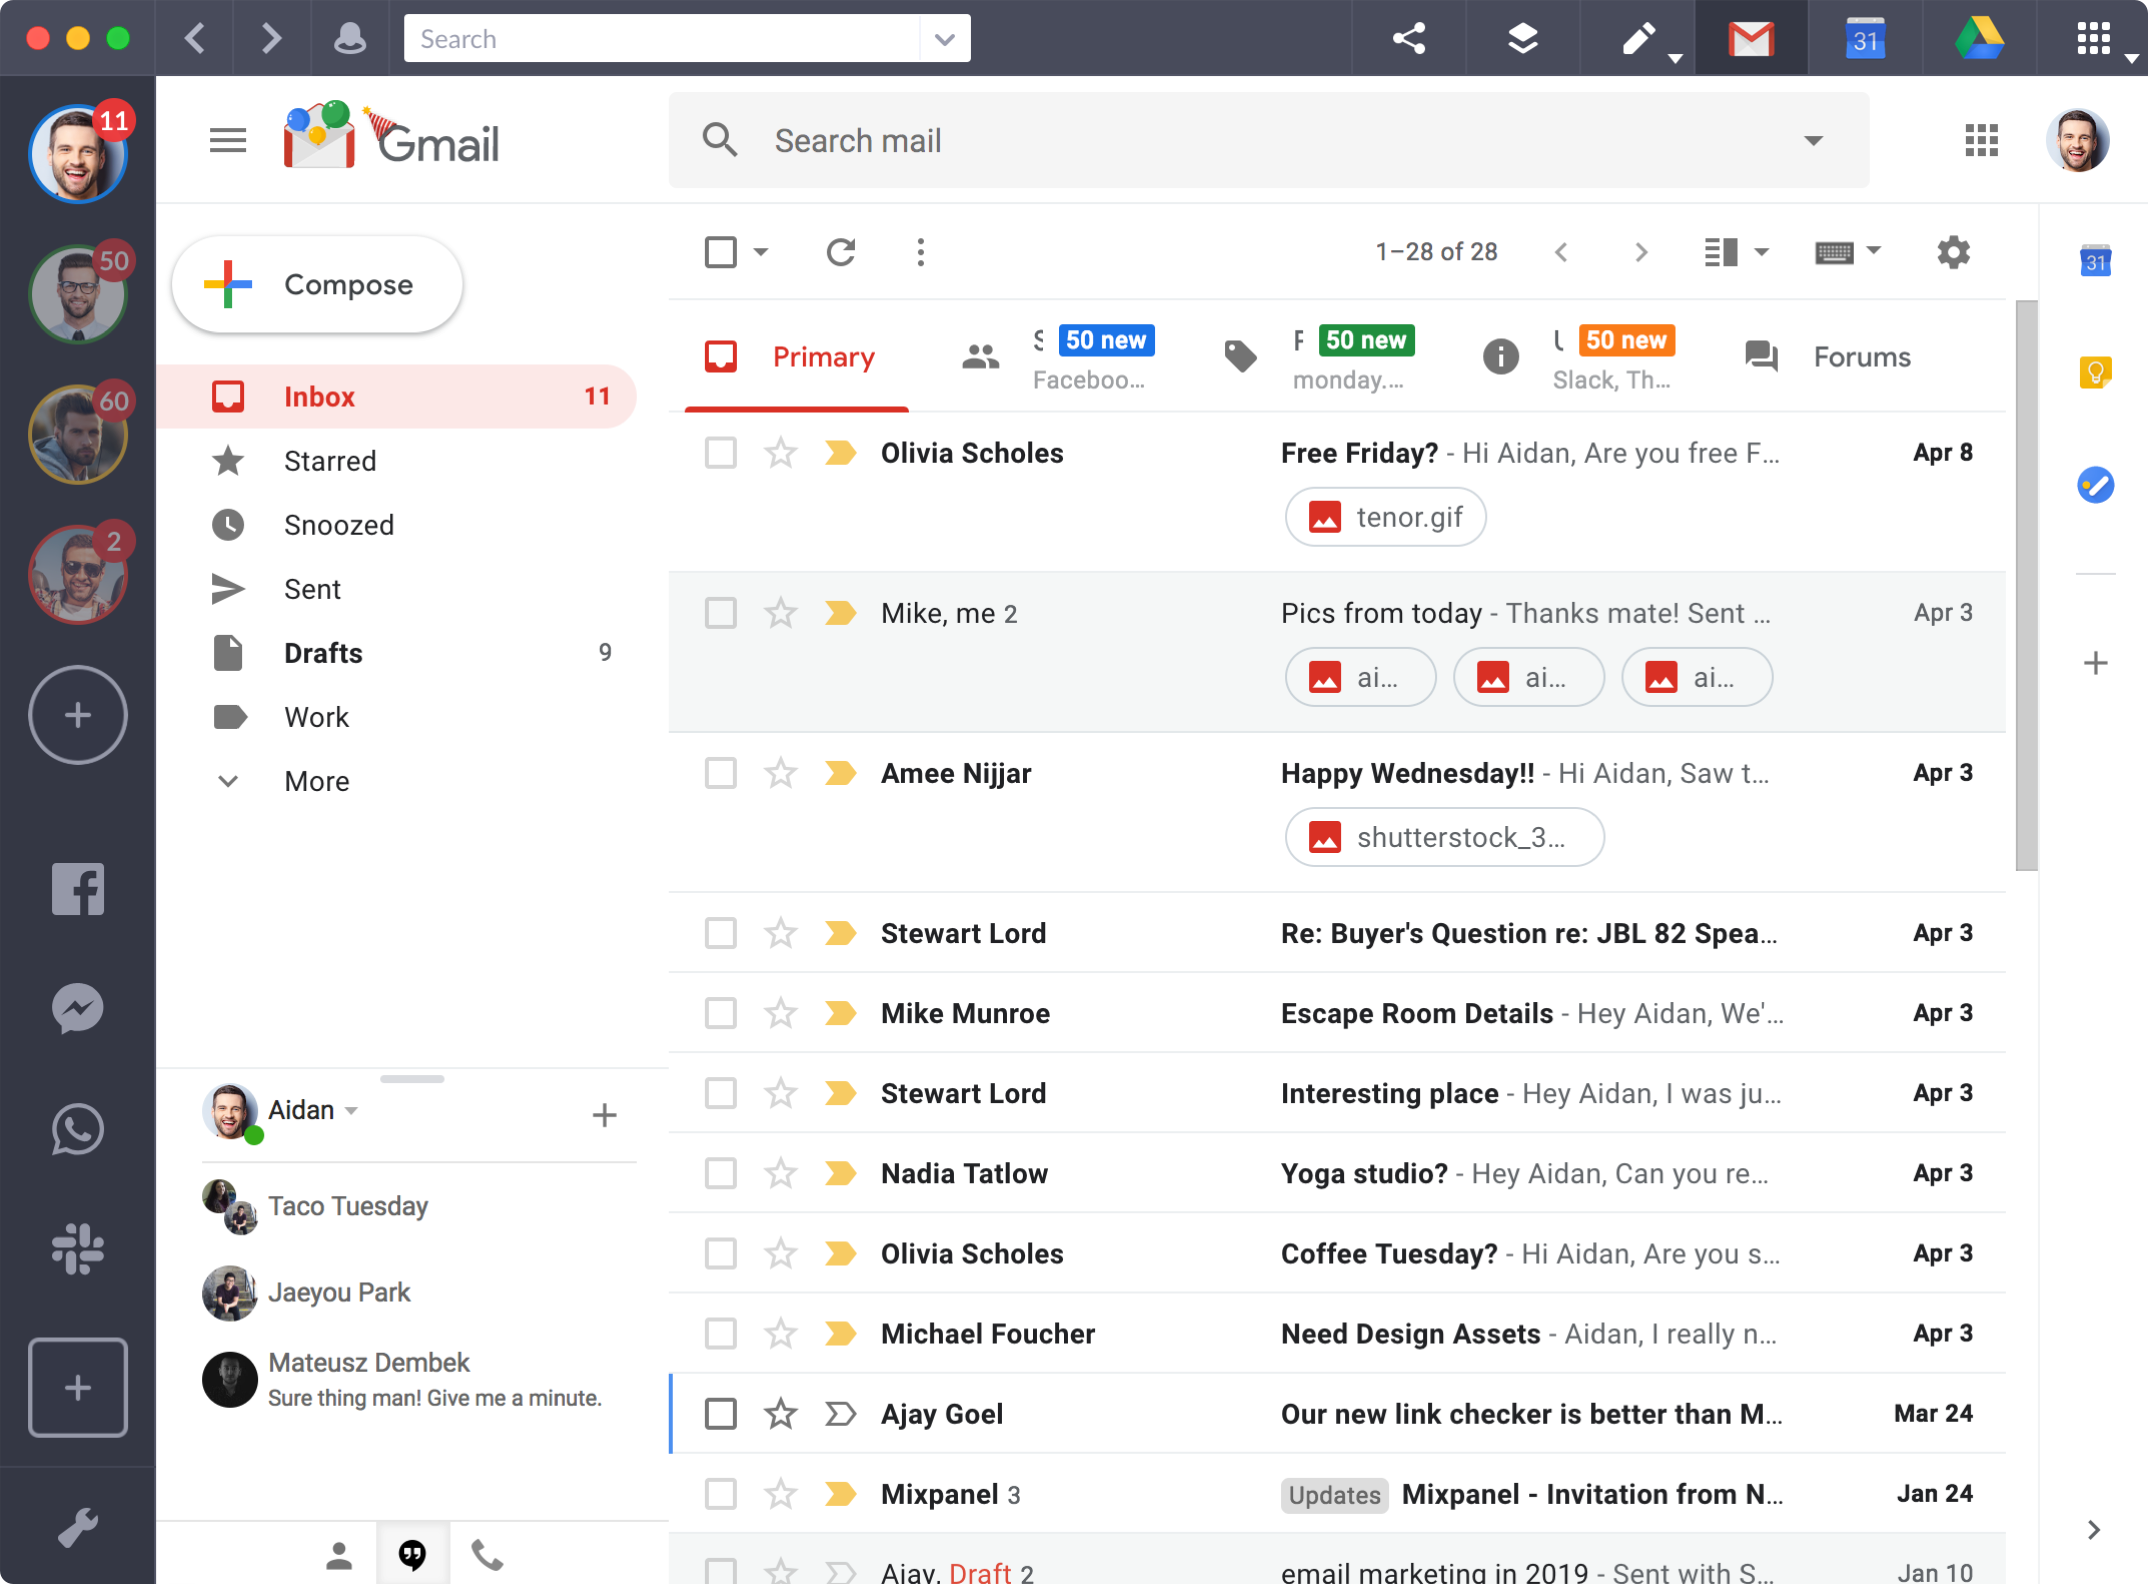 Shift - The Best Way to Manage All of Your Email and App